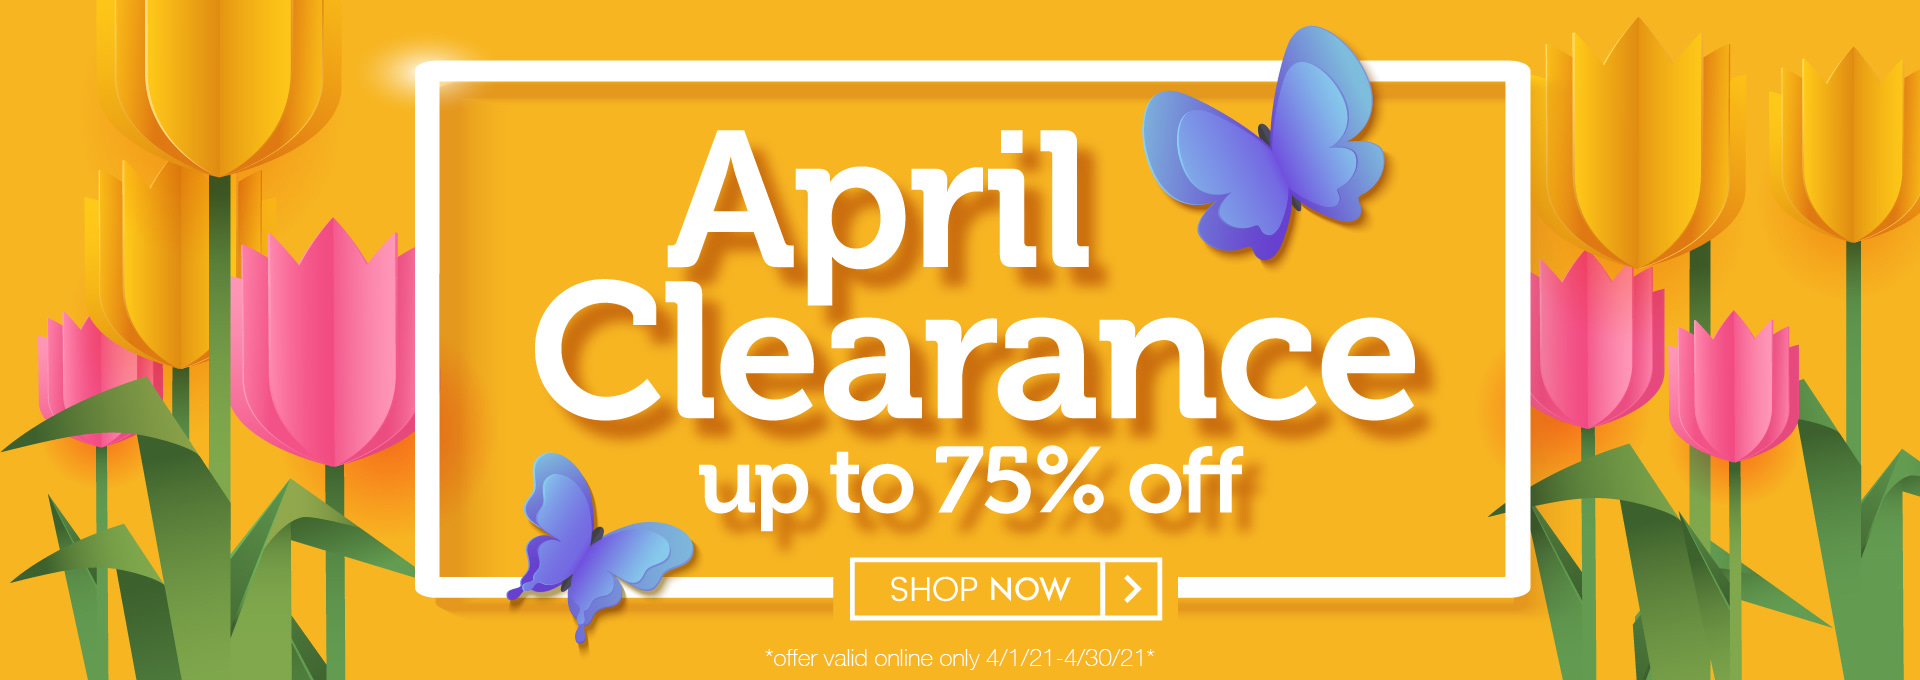 April Clearance Sale - Up to 75% OFF